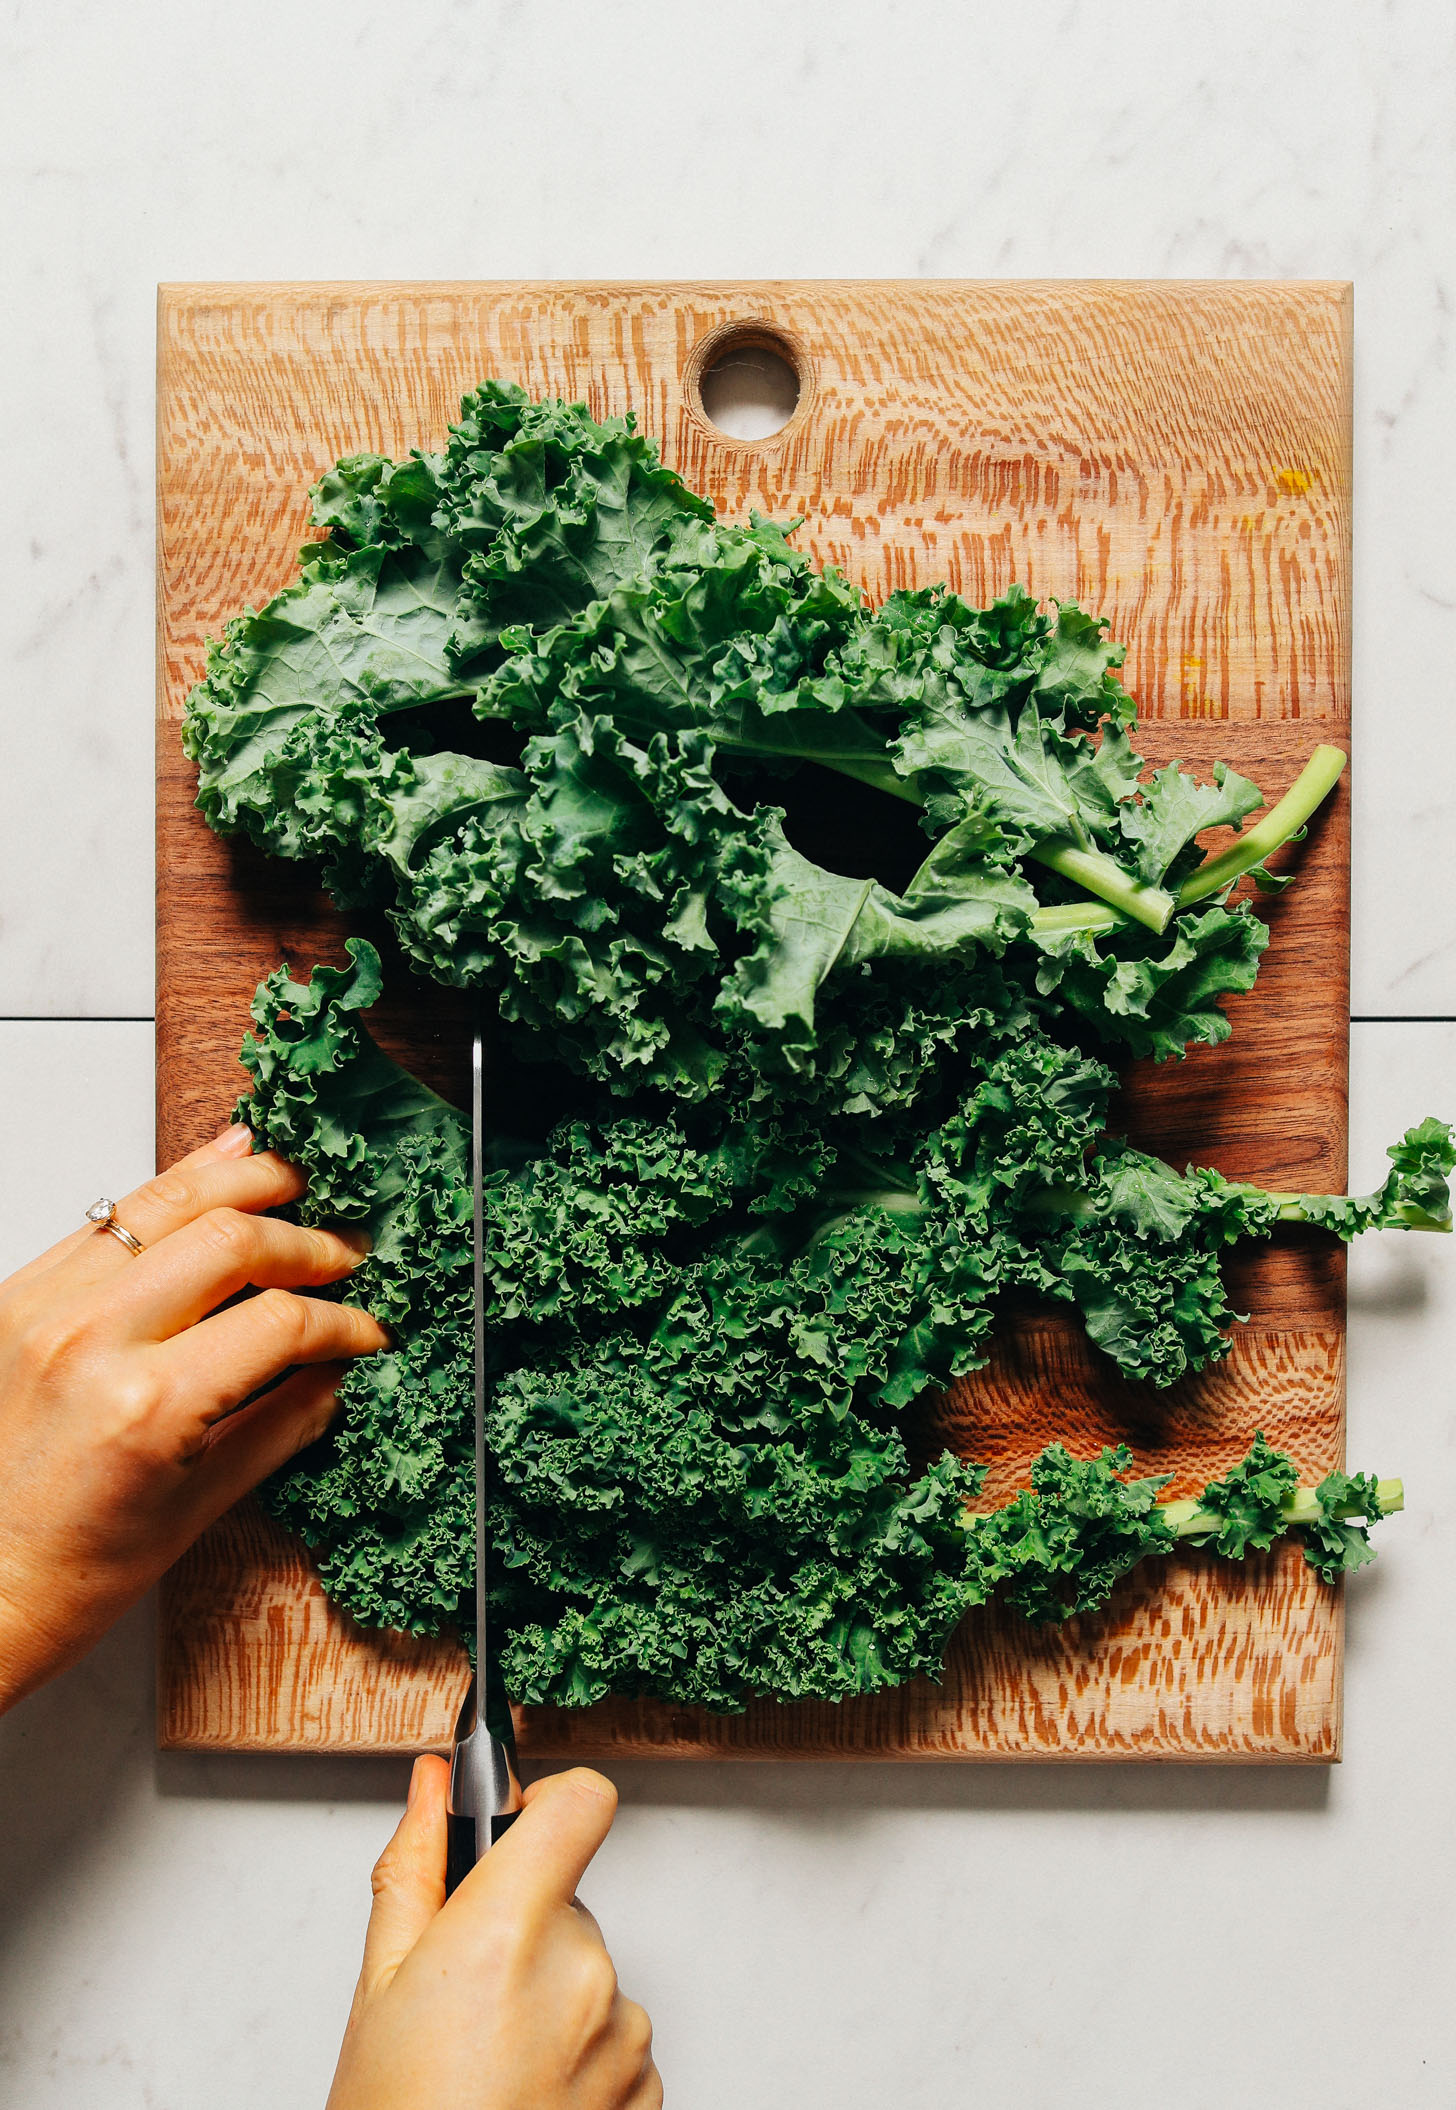 Using a large knife to chop kale for our Massaged Kale Salad recipe